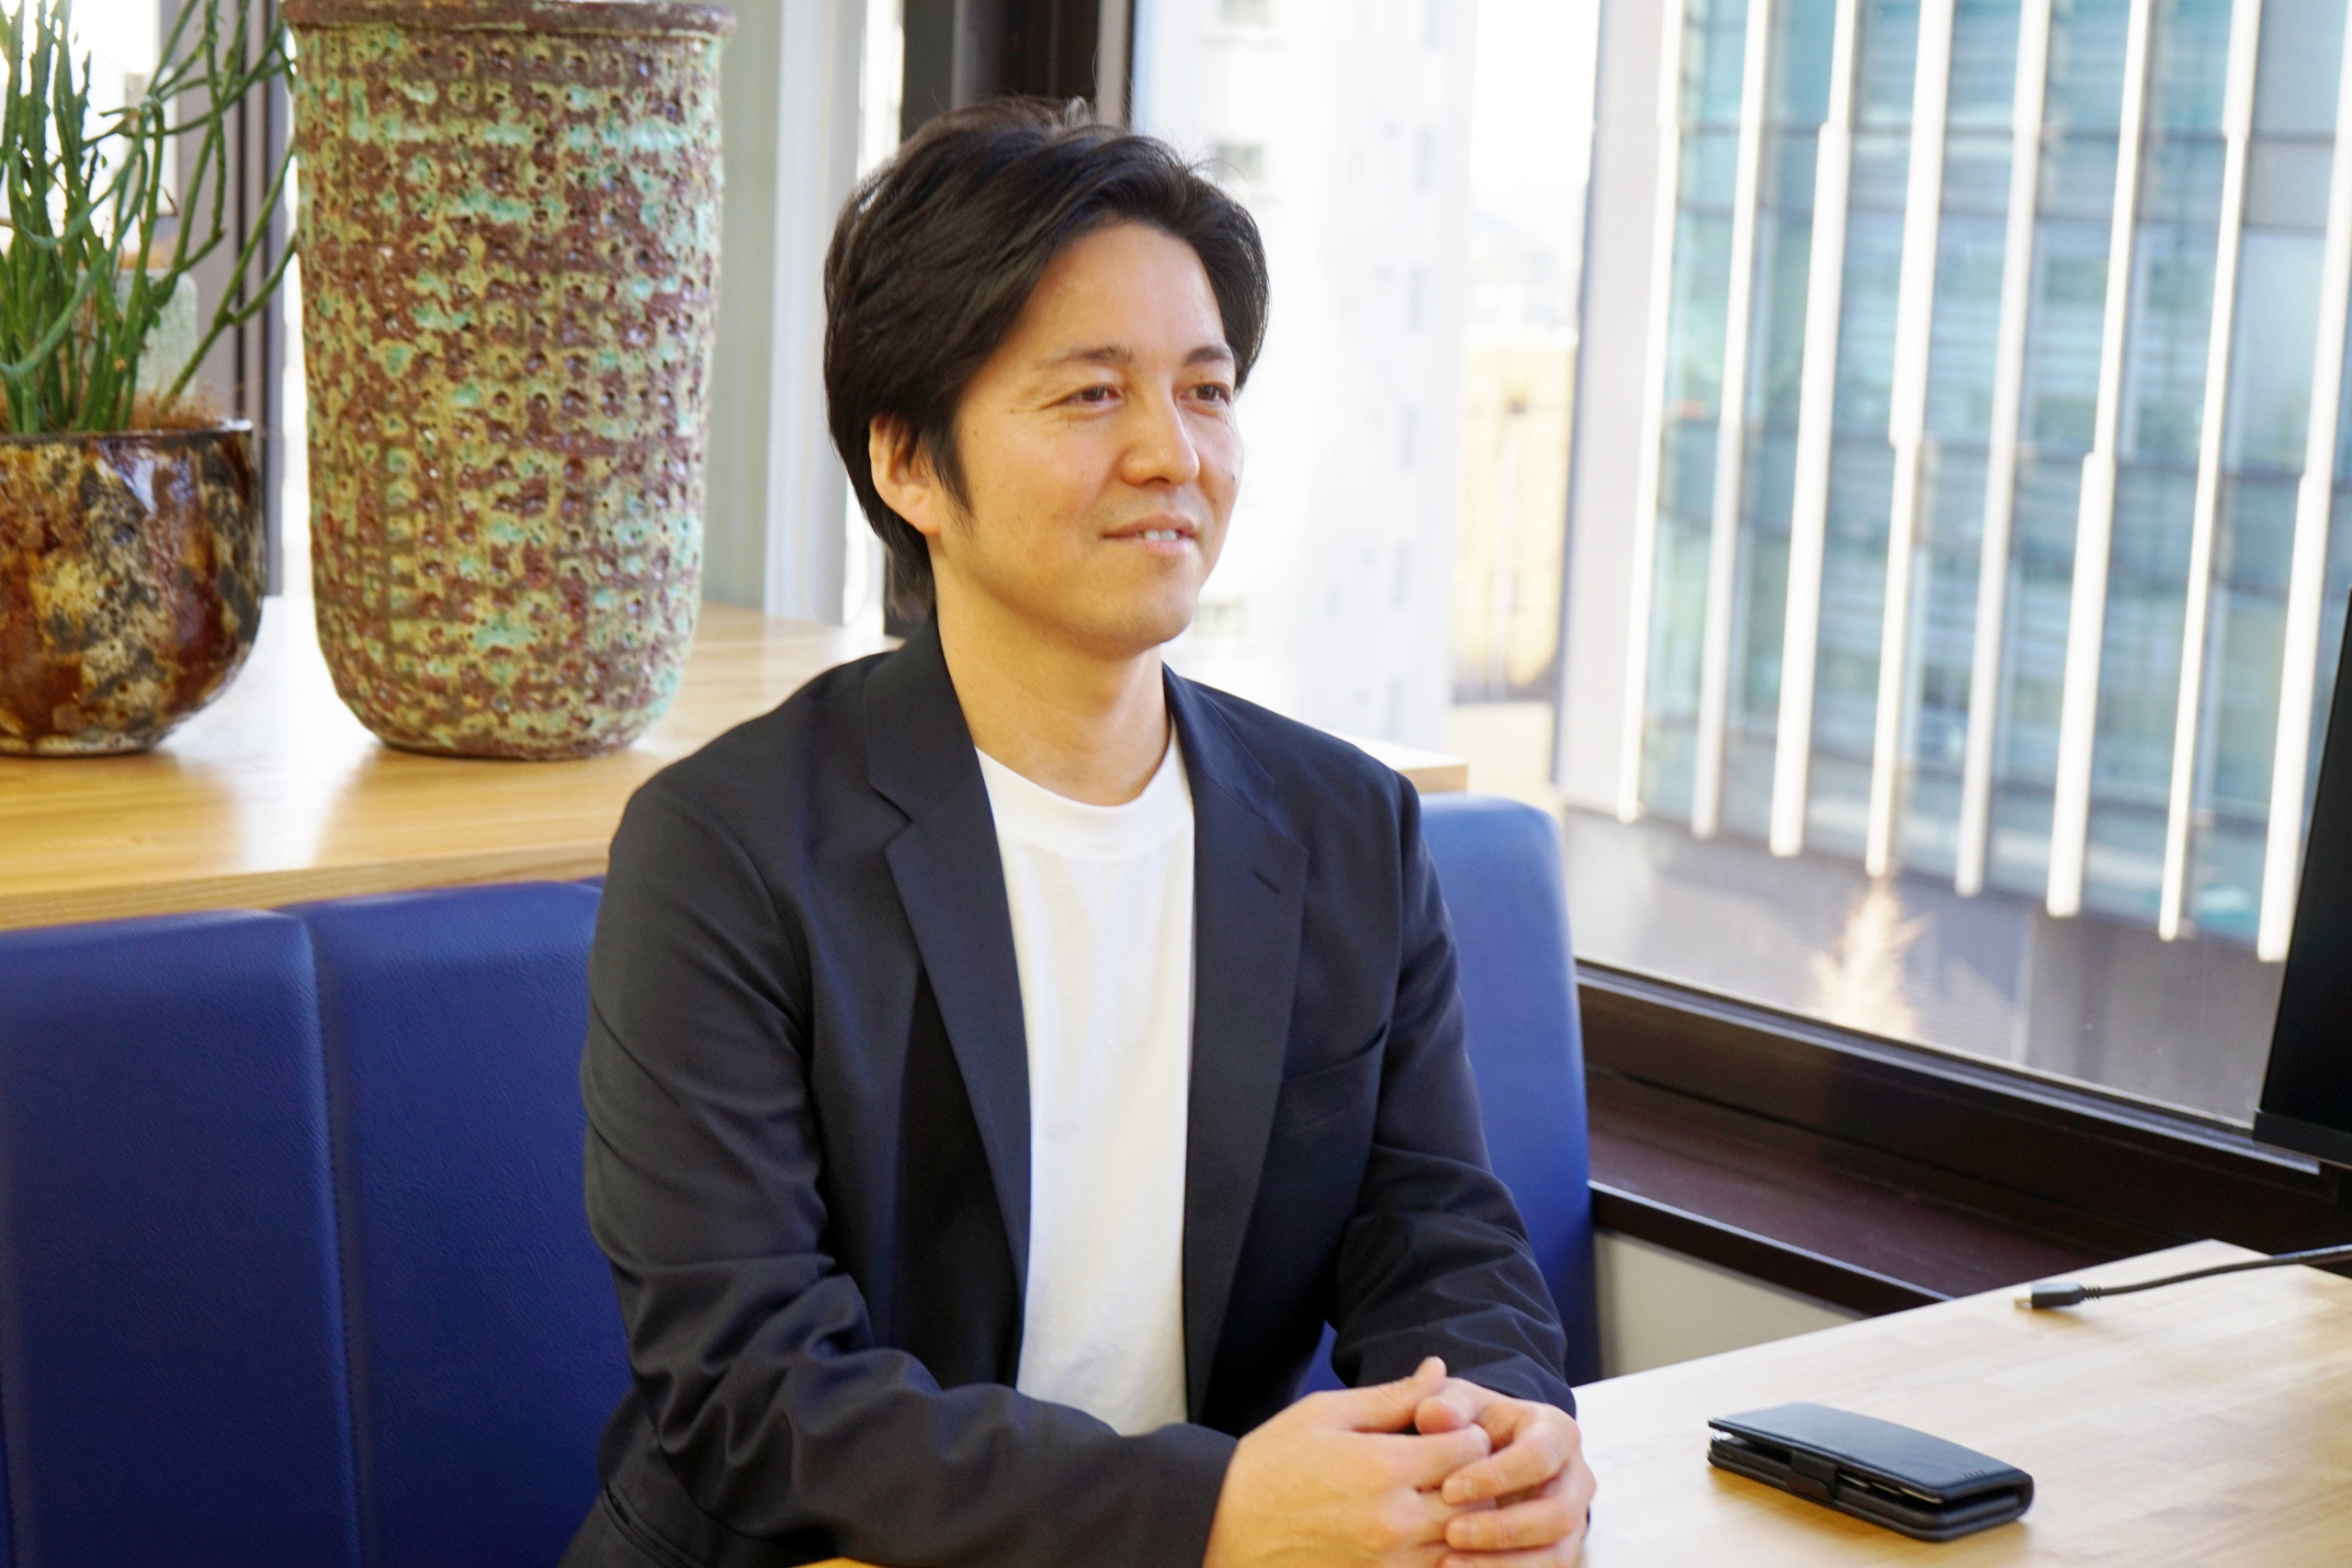 Funds代表取締役 藤田さん01